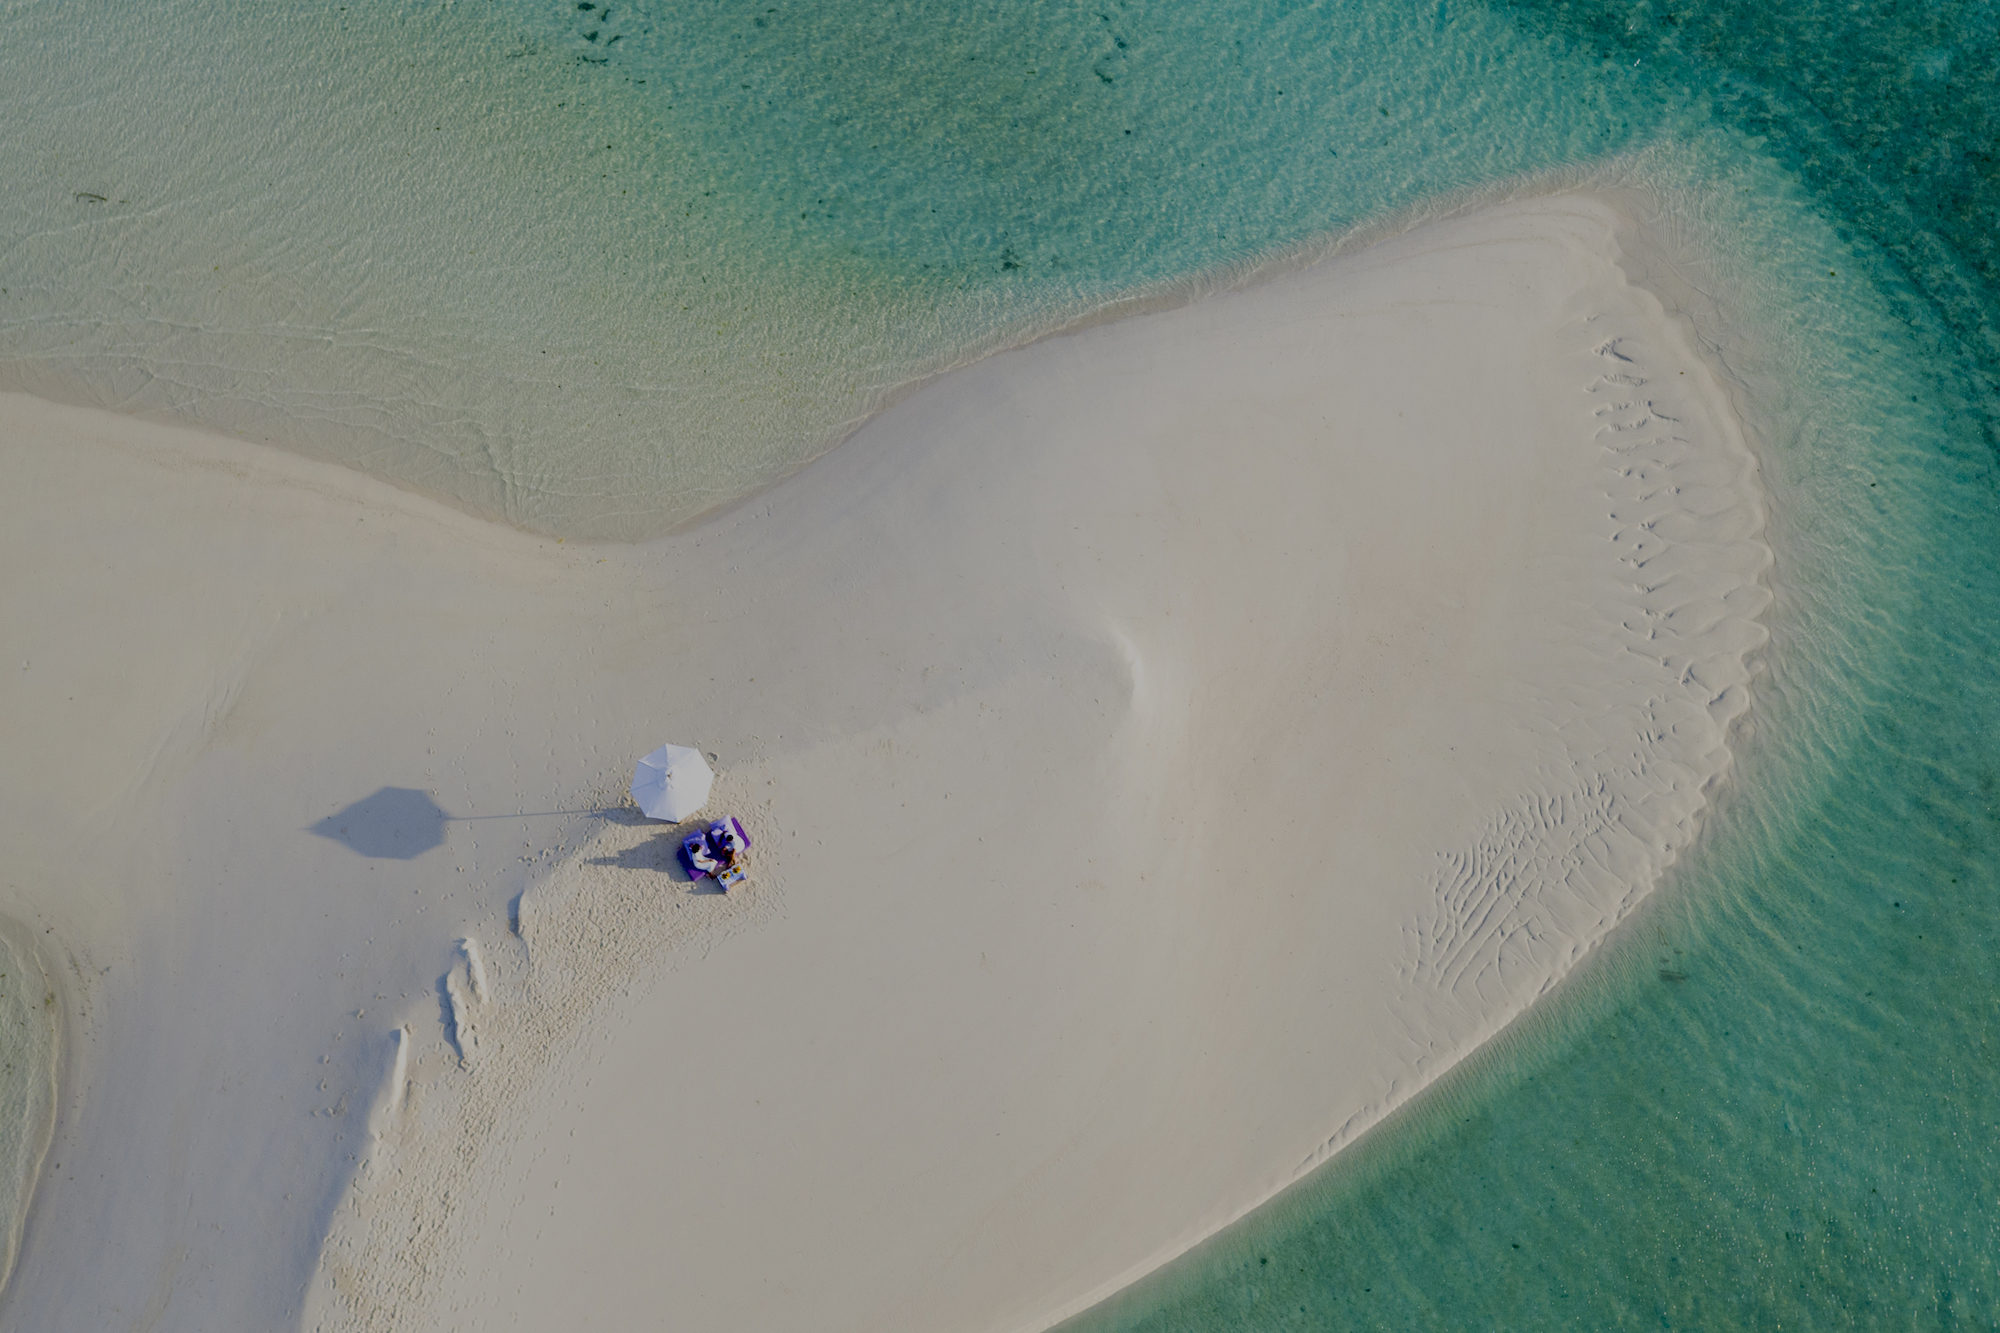 15 Photos of the Maldives to Stoke Your Wanderlust